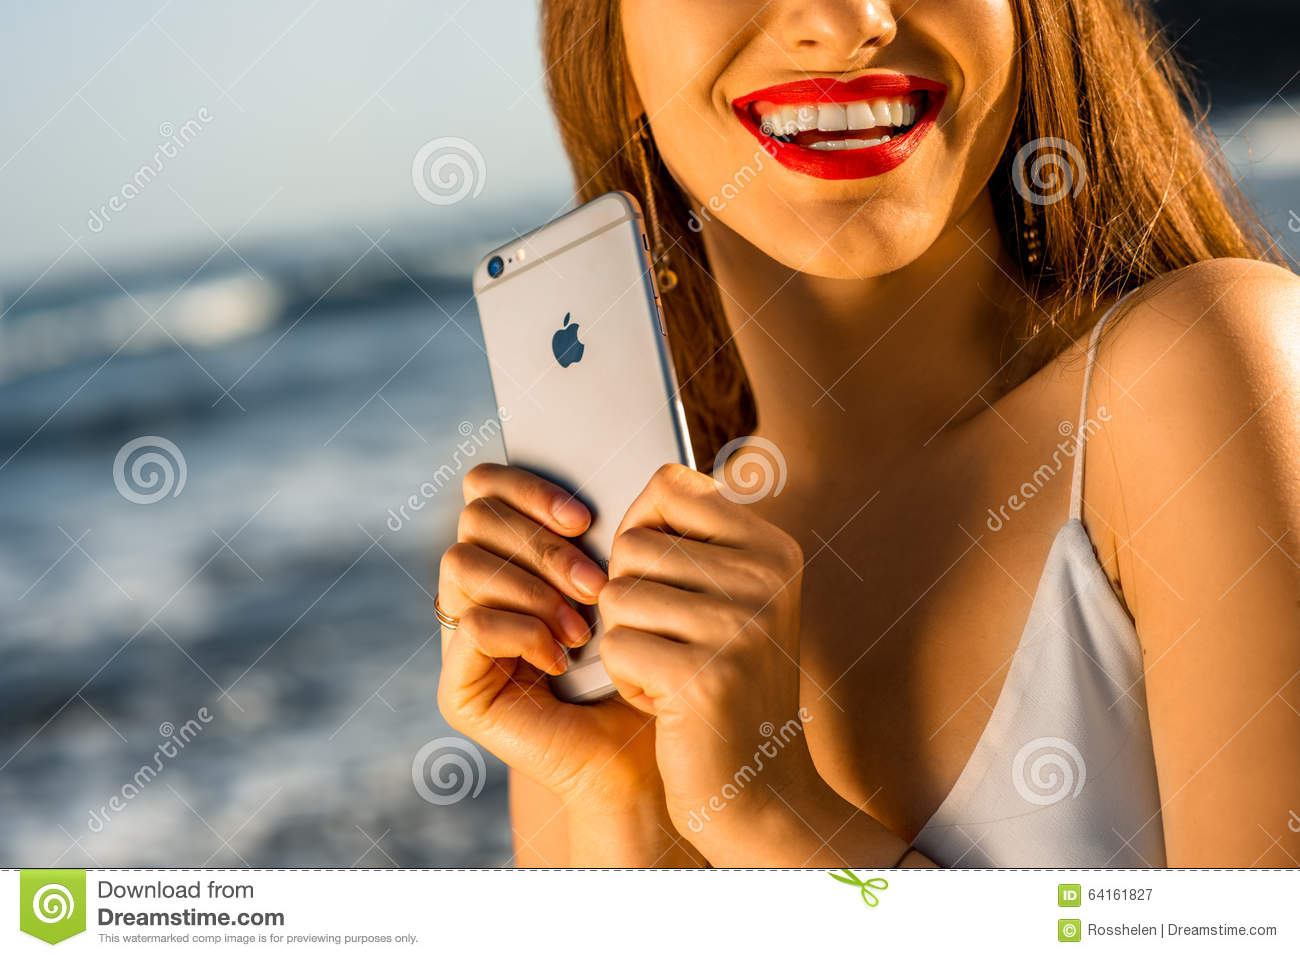 naked girl holding iphone